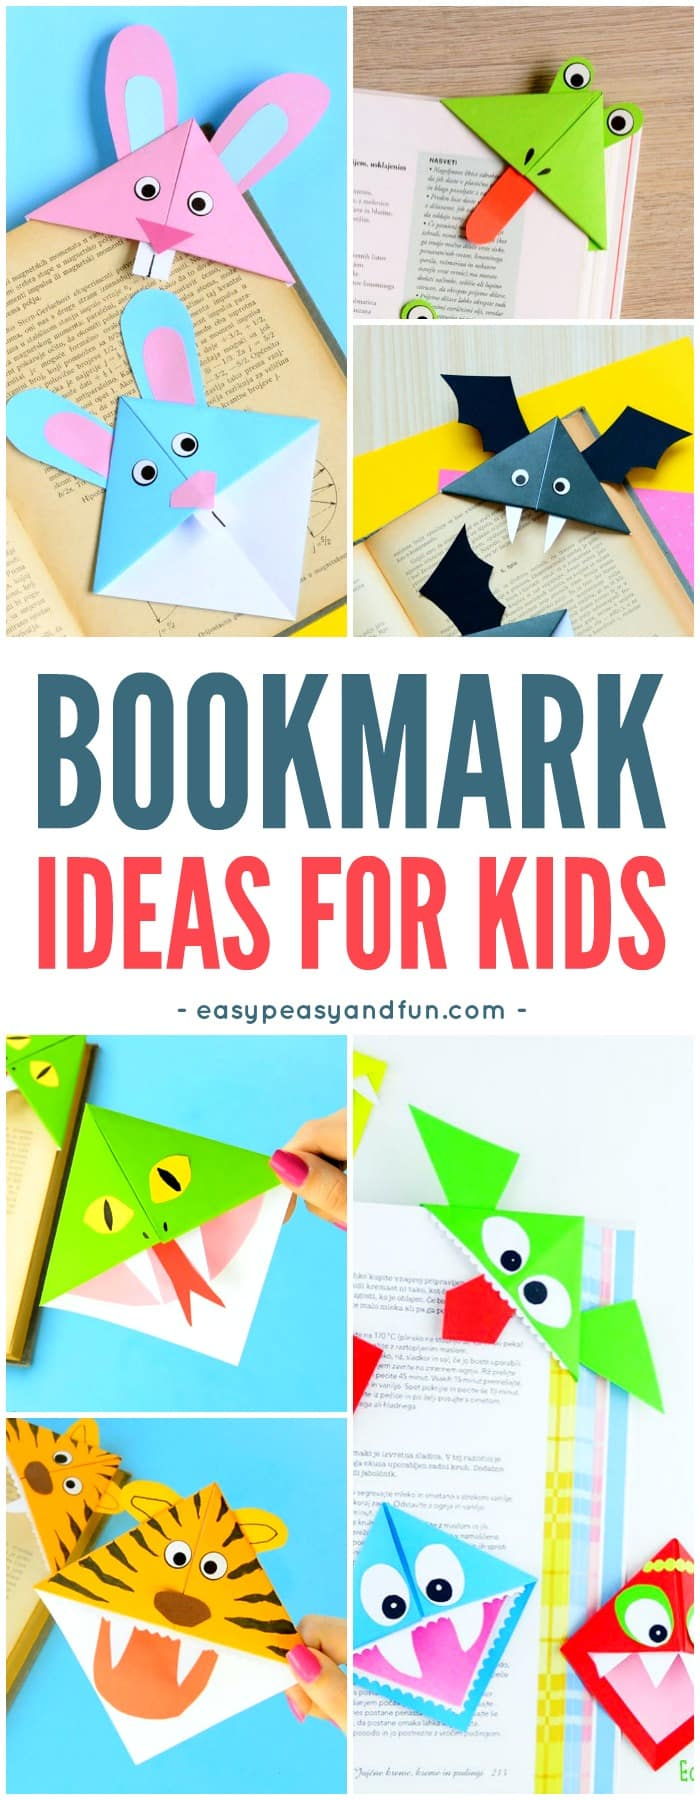 Simple Bookmarks Ideas For Kids